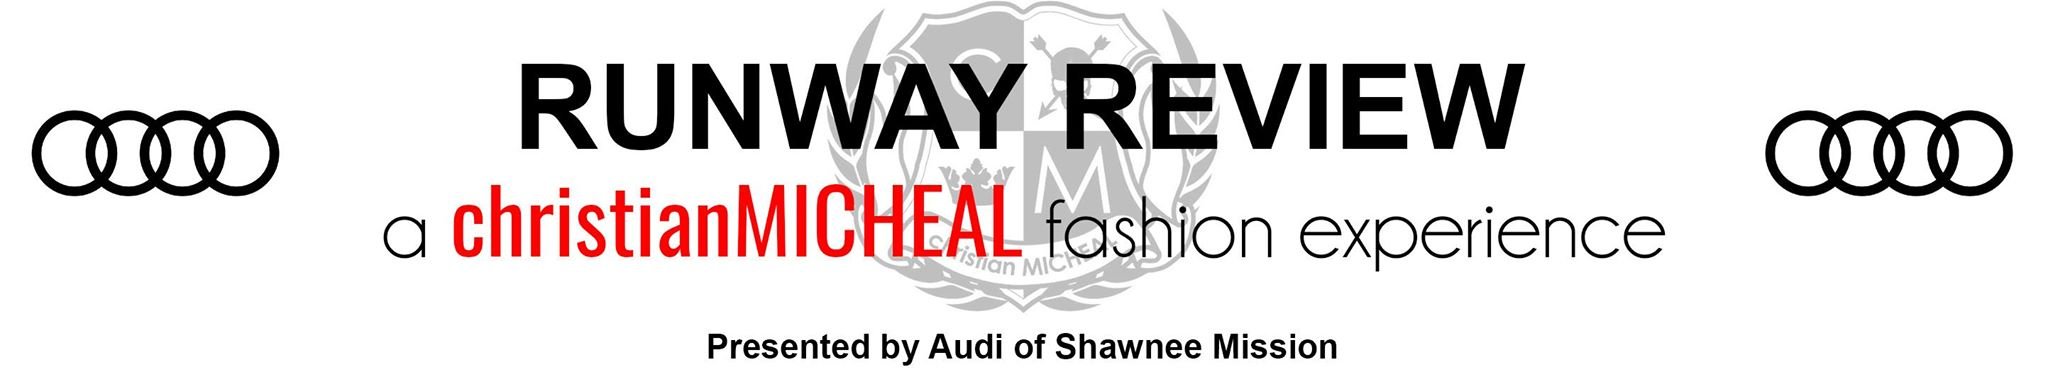 Runway Review KC | Participate